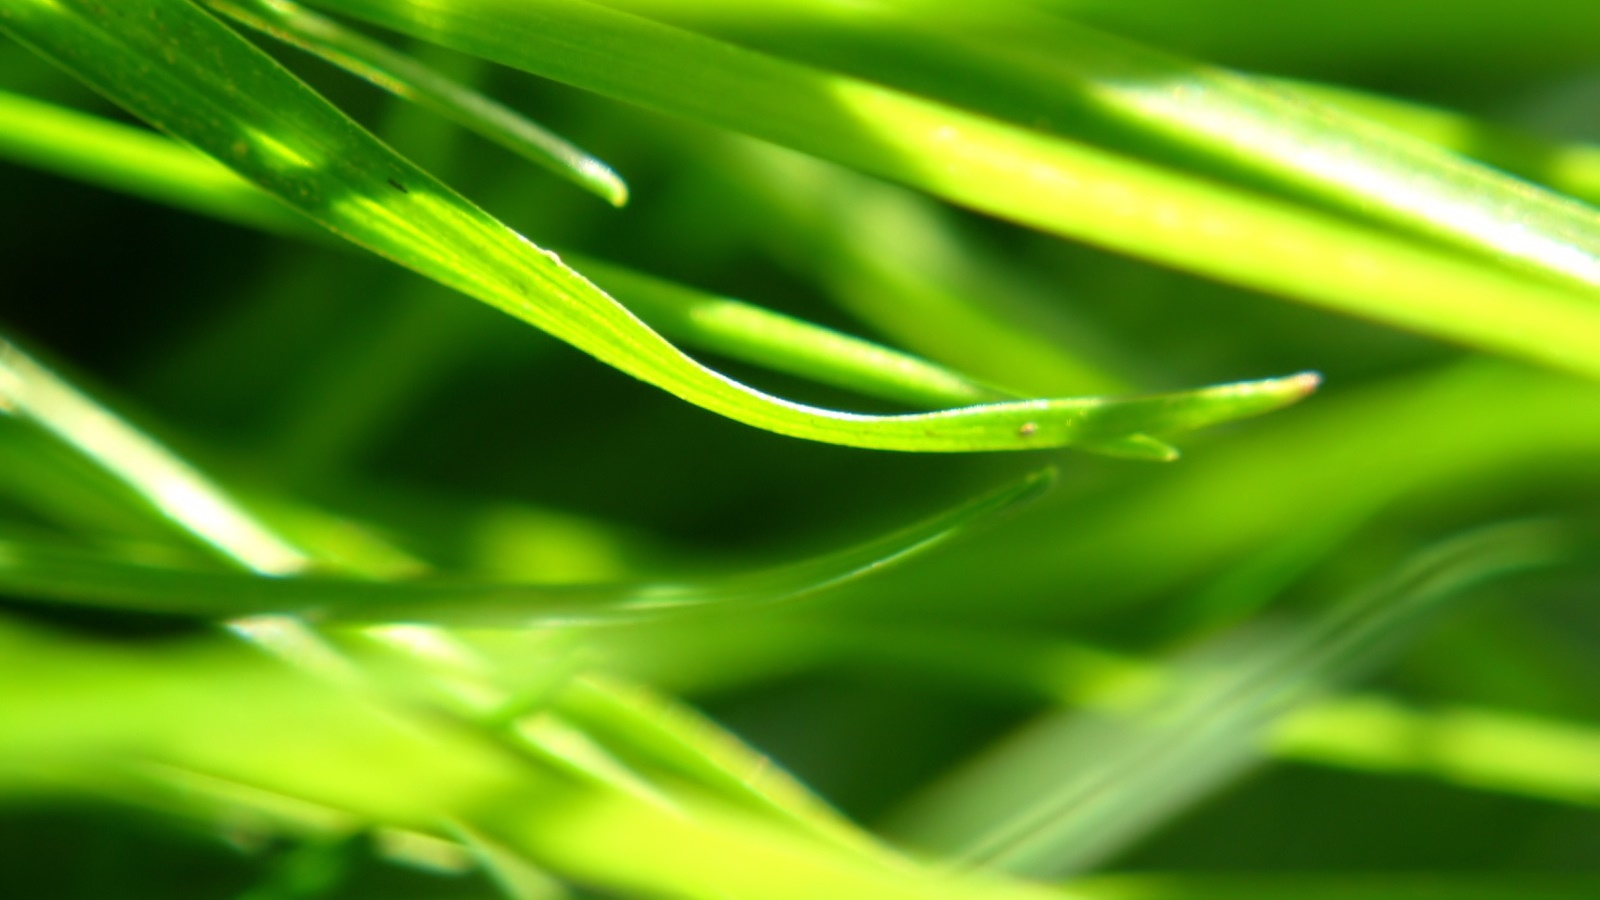 Plants close-up, grass, green 1600x900 wallpaper